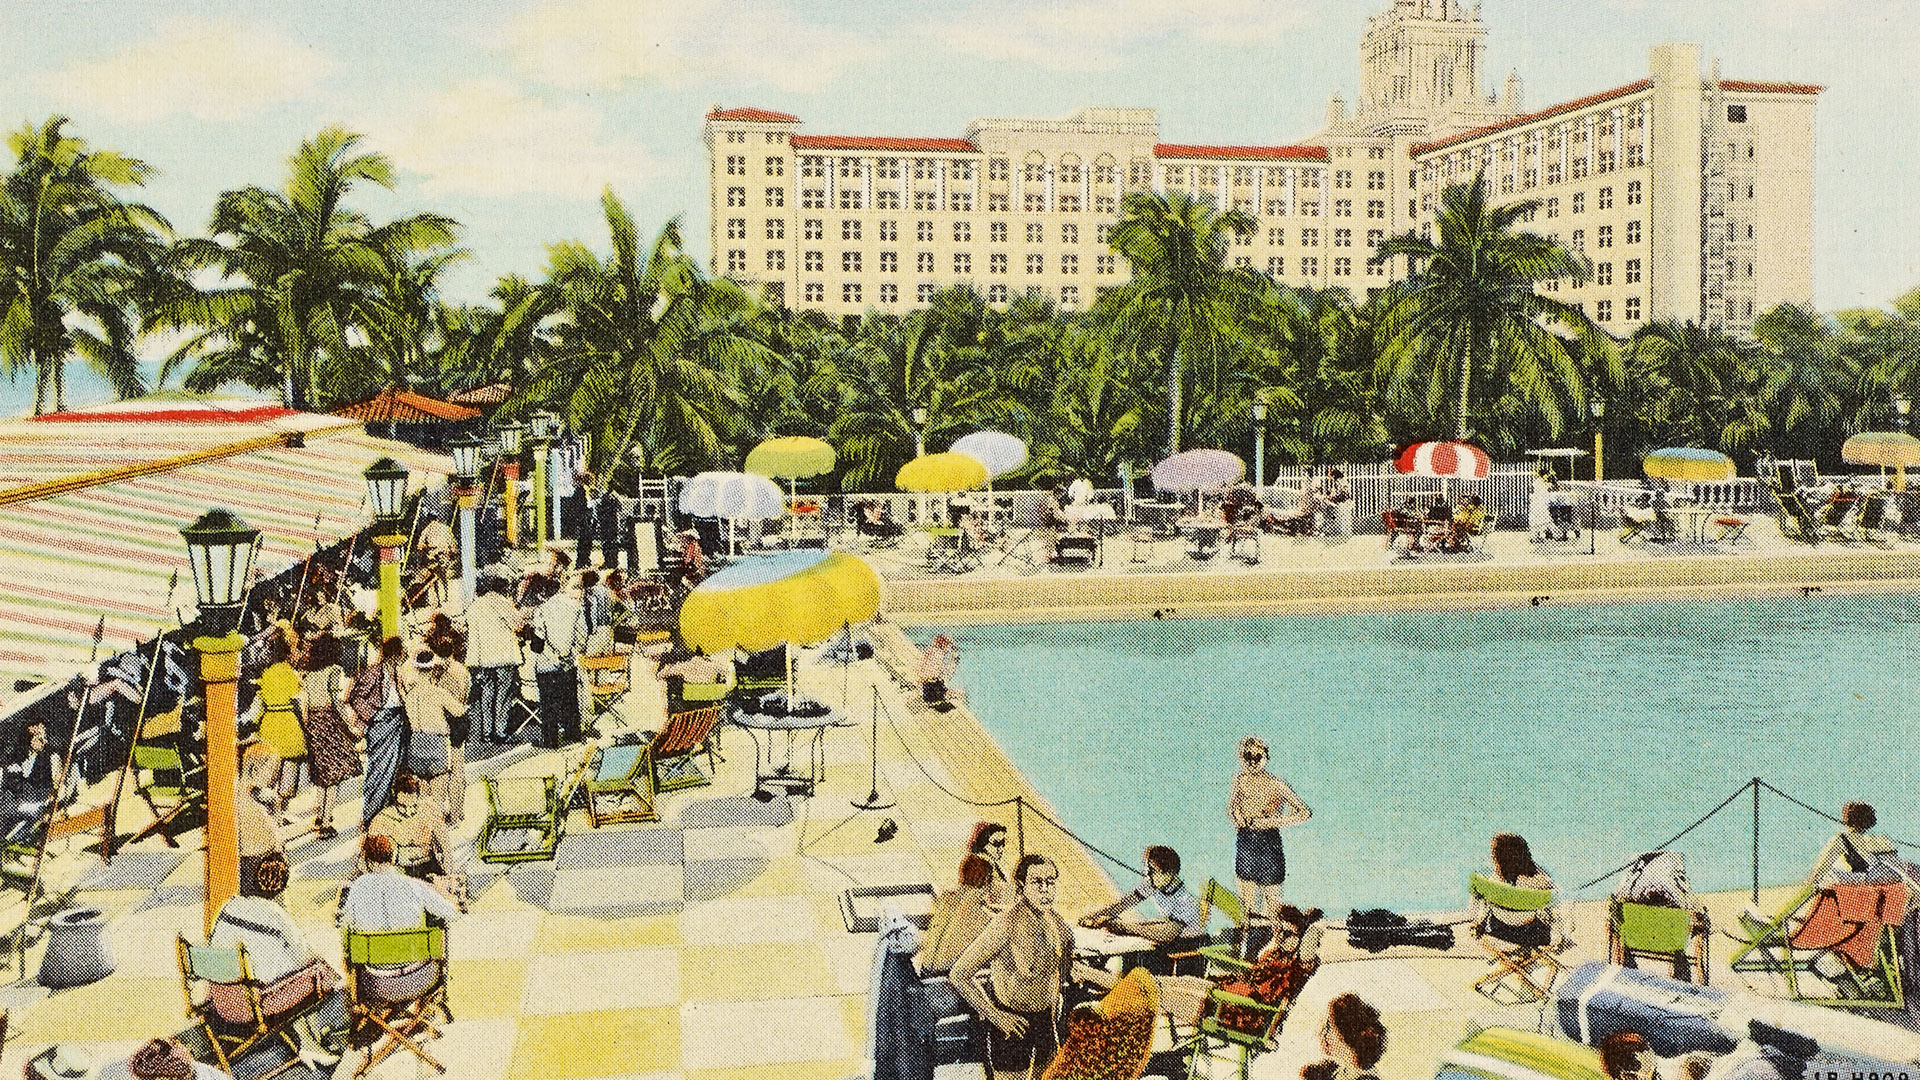 Postcard of a hotel club and pool